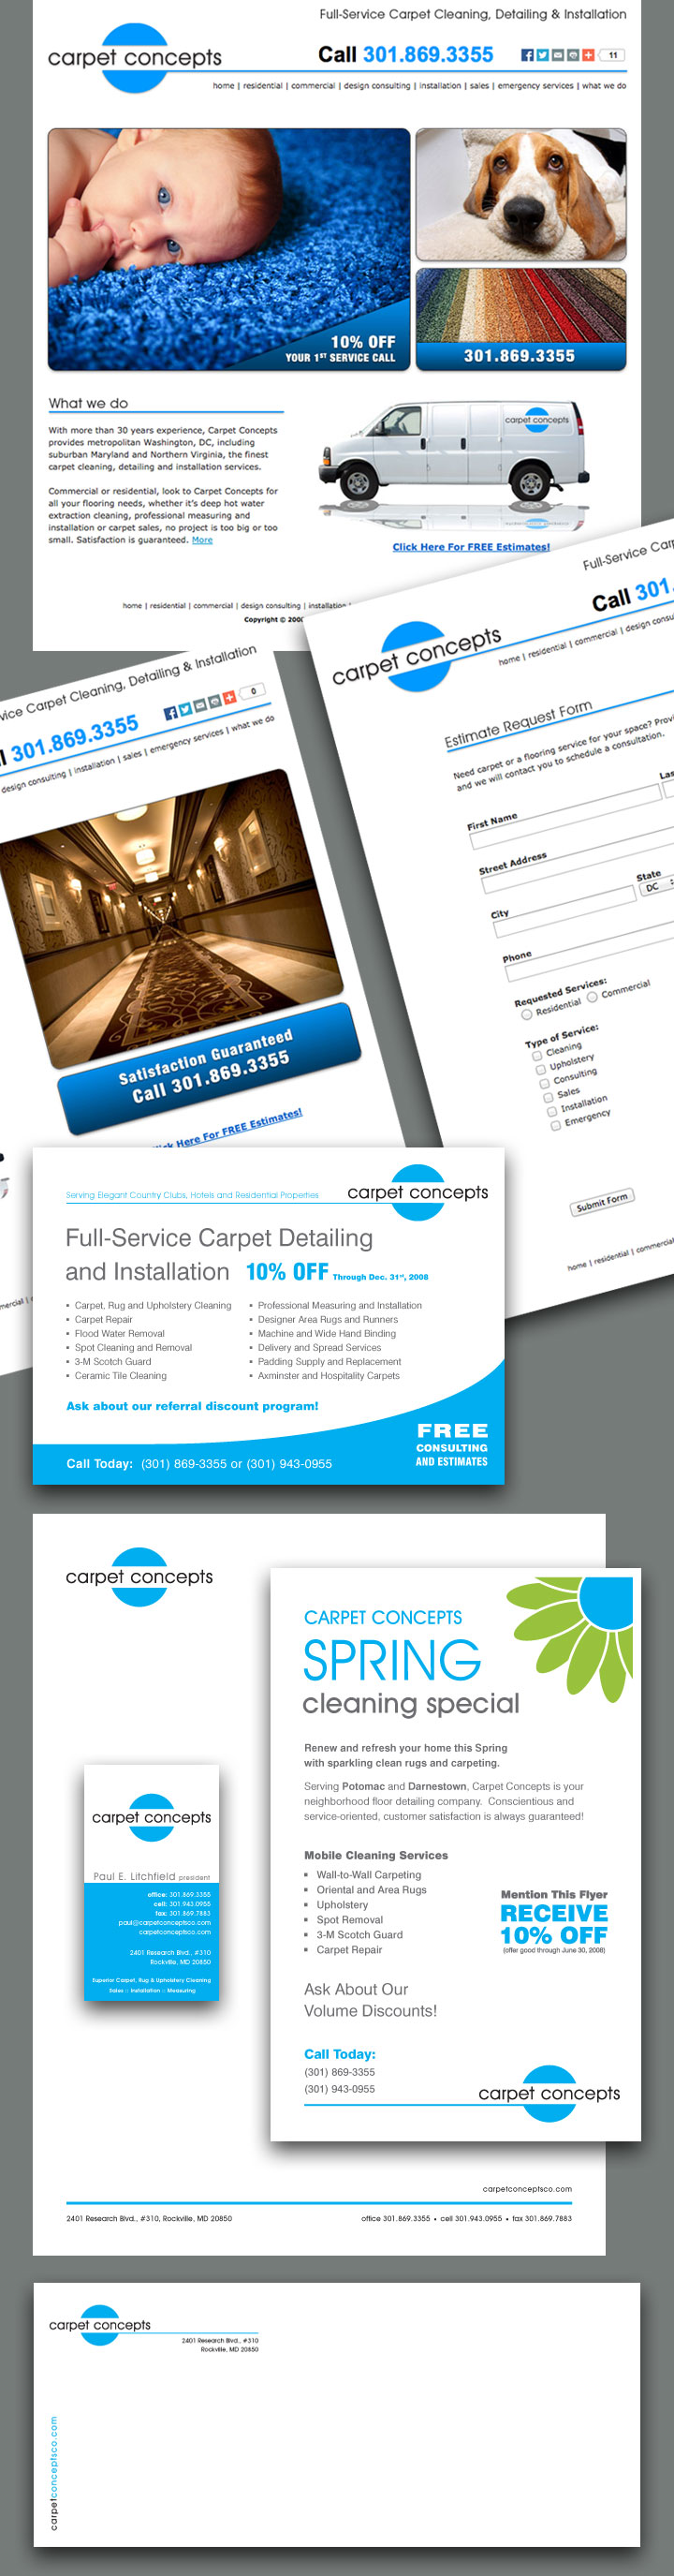 Carpet Concepts Website and Collateral